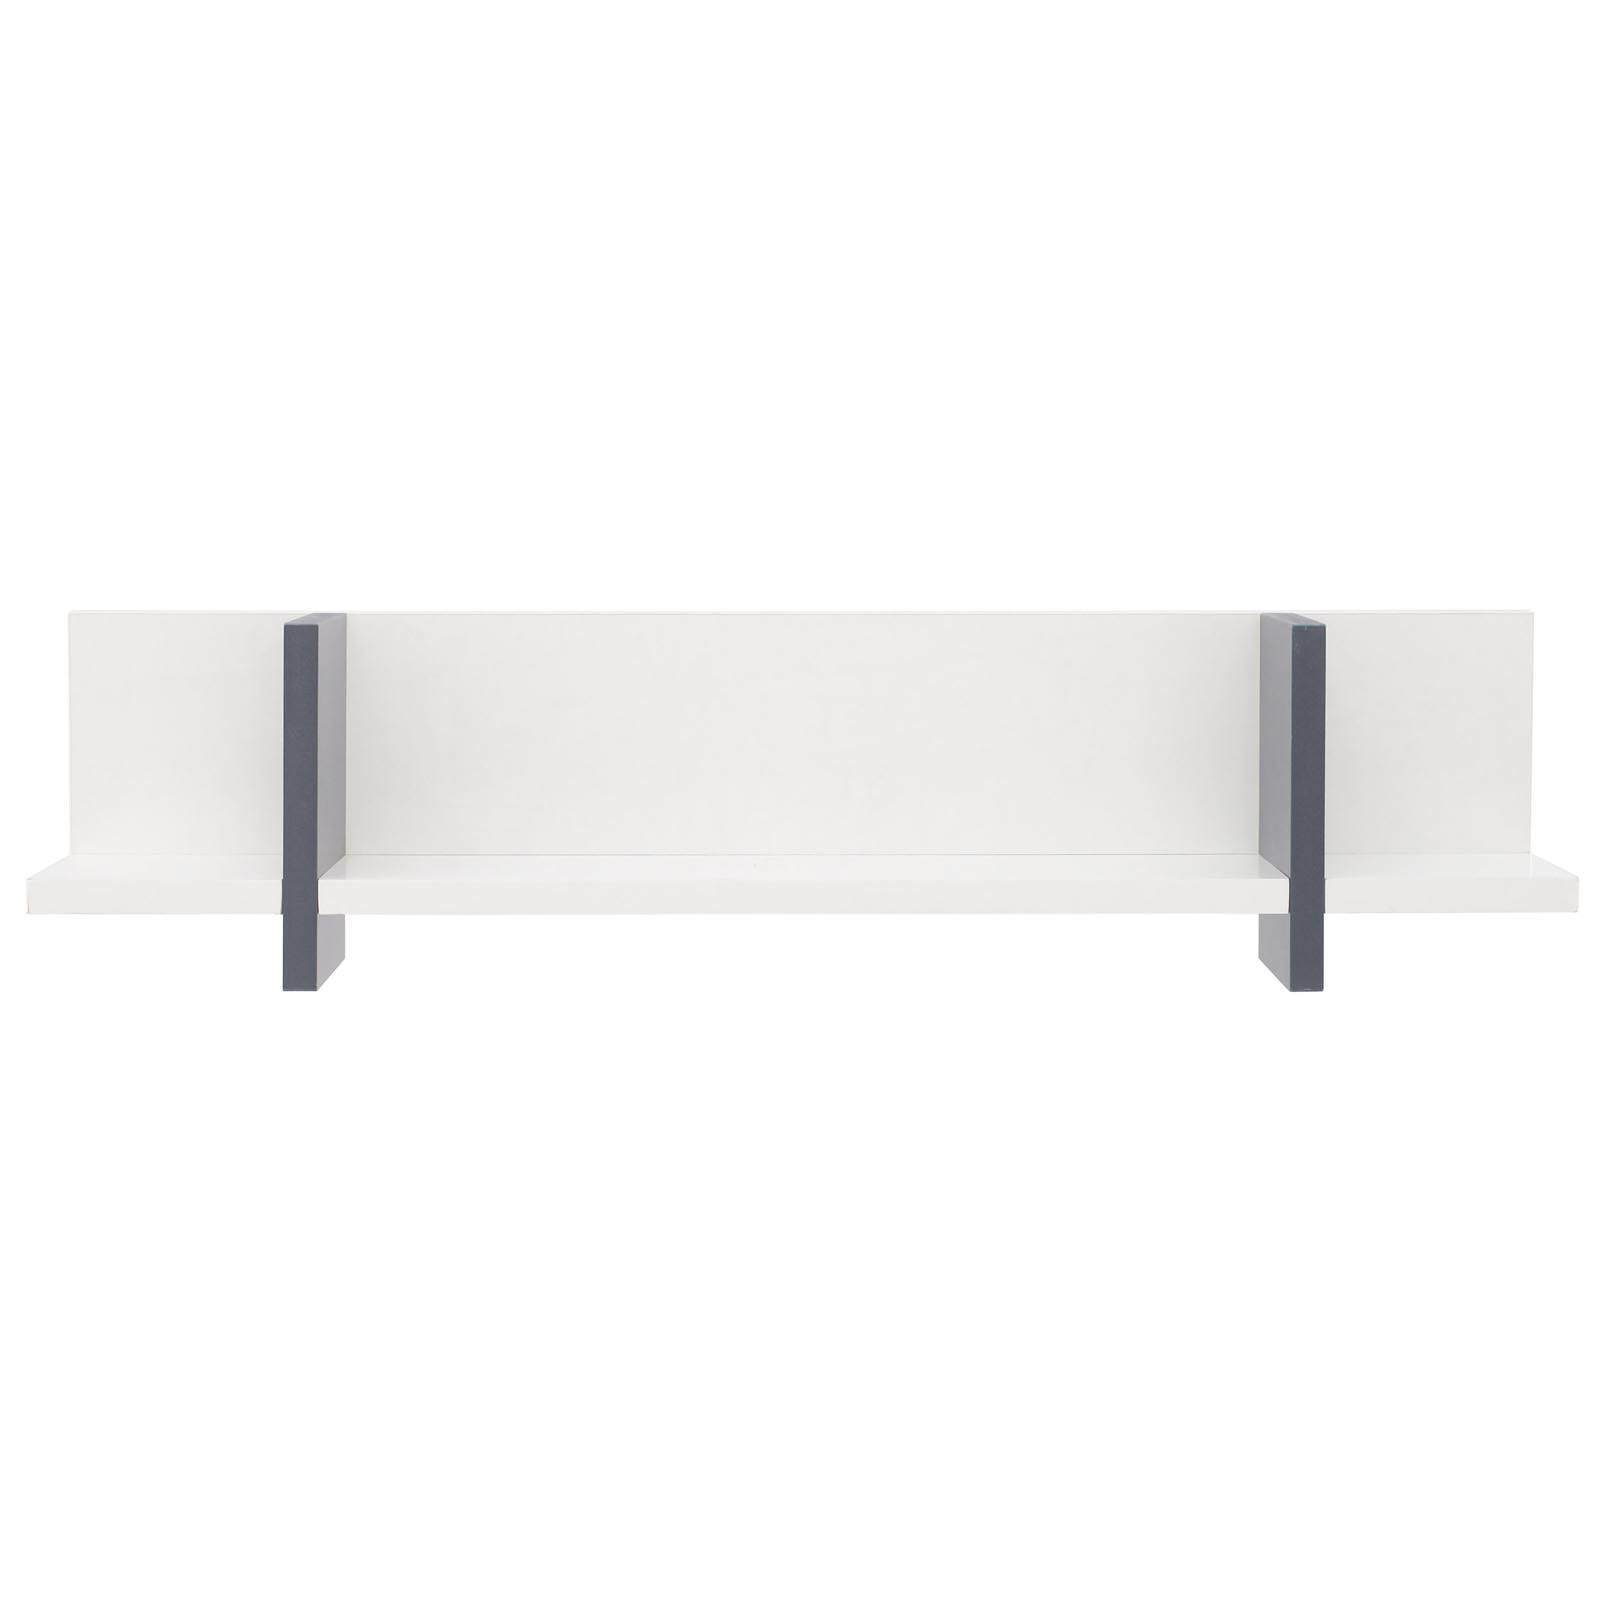 Anywhich Way Wall Shelf Navy By Little Folks For Kids In S A